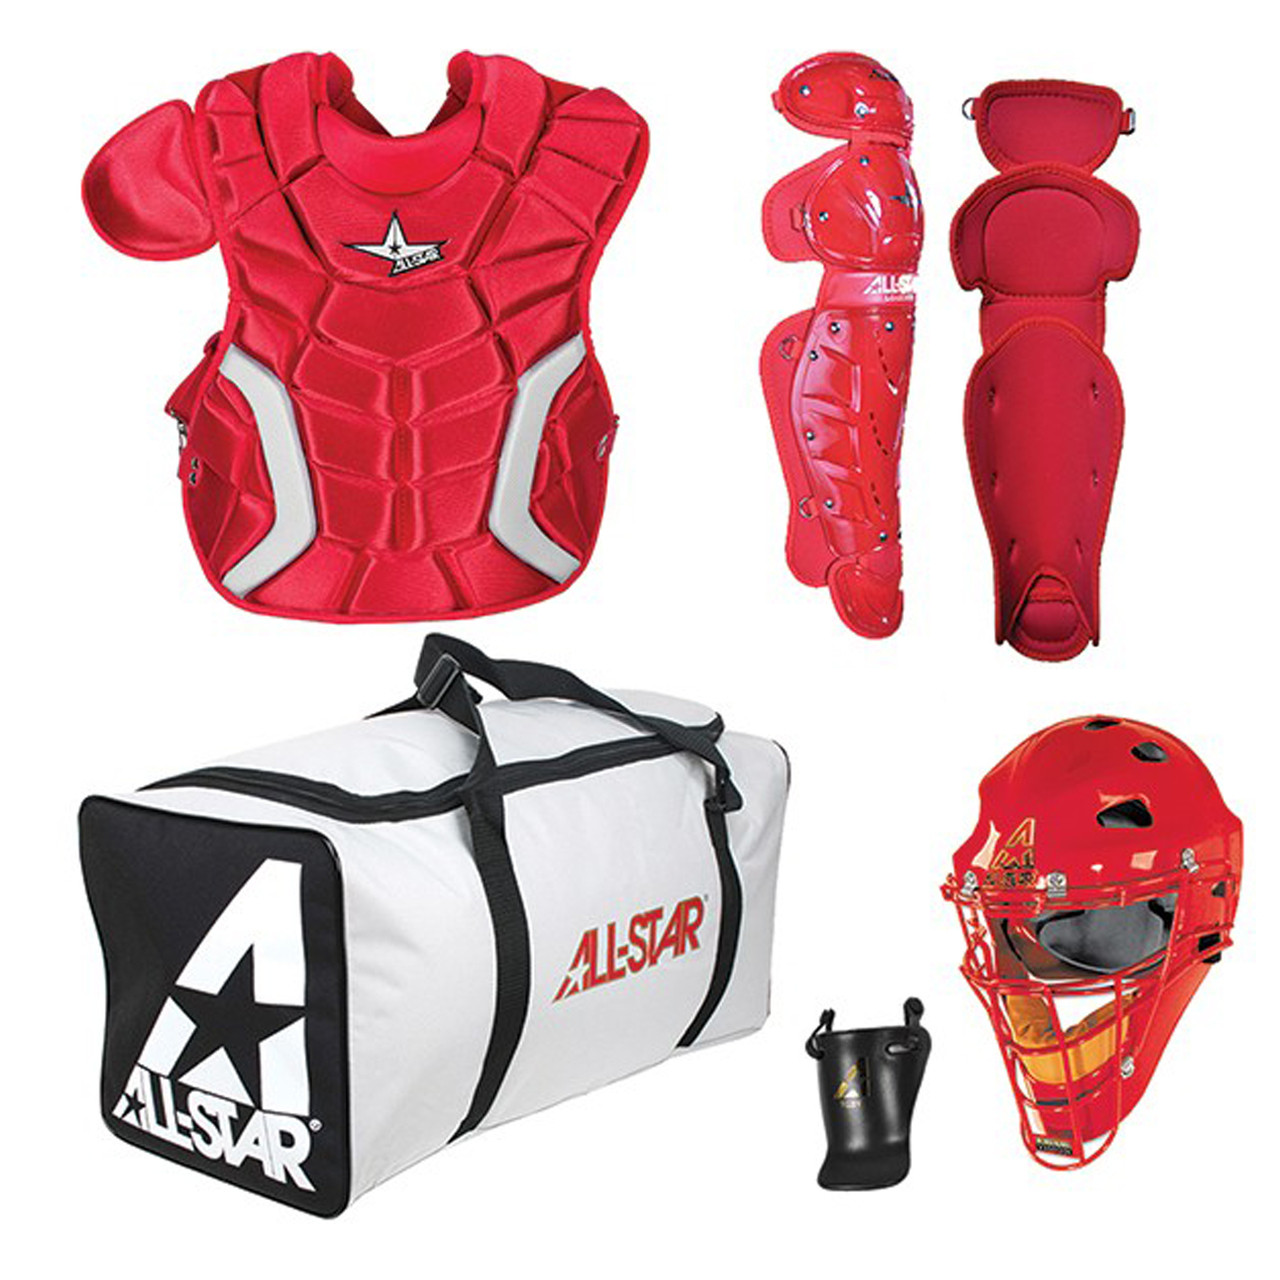 AllStar Players Series Catchers Kit Youth - Scarlet   Best Price f9bc423e1c